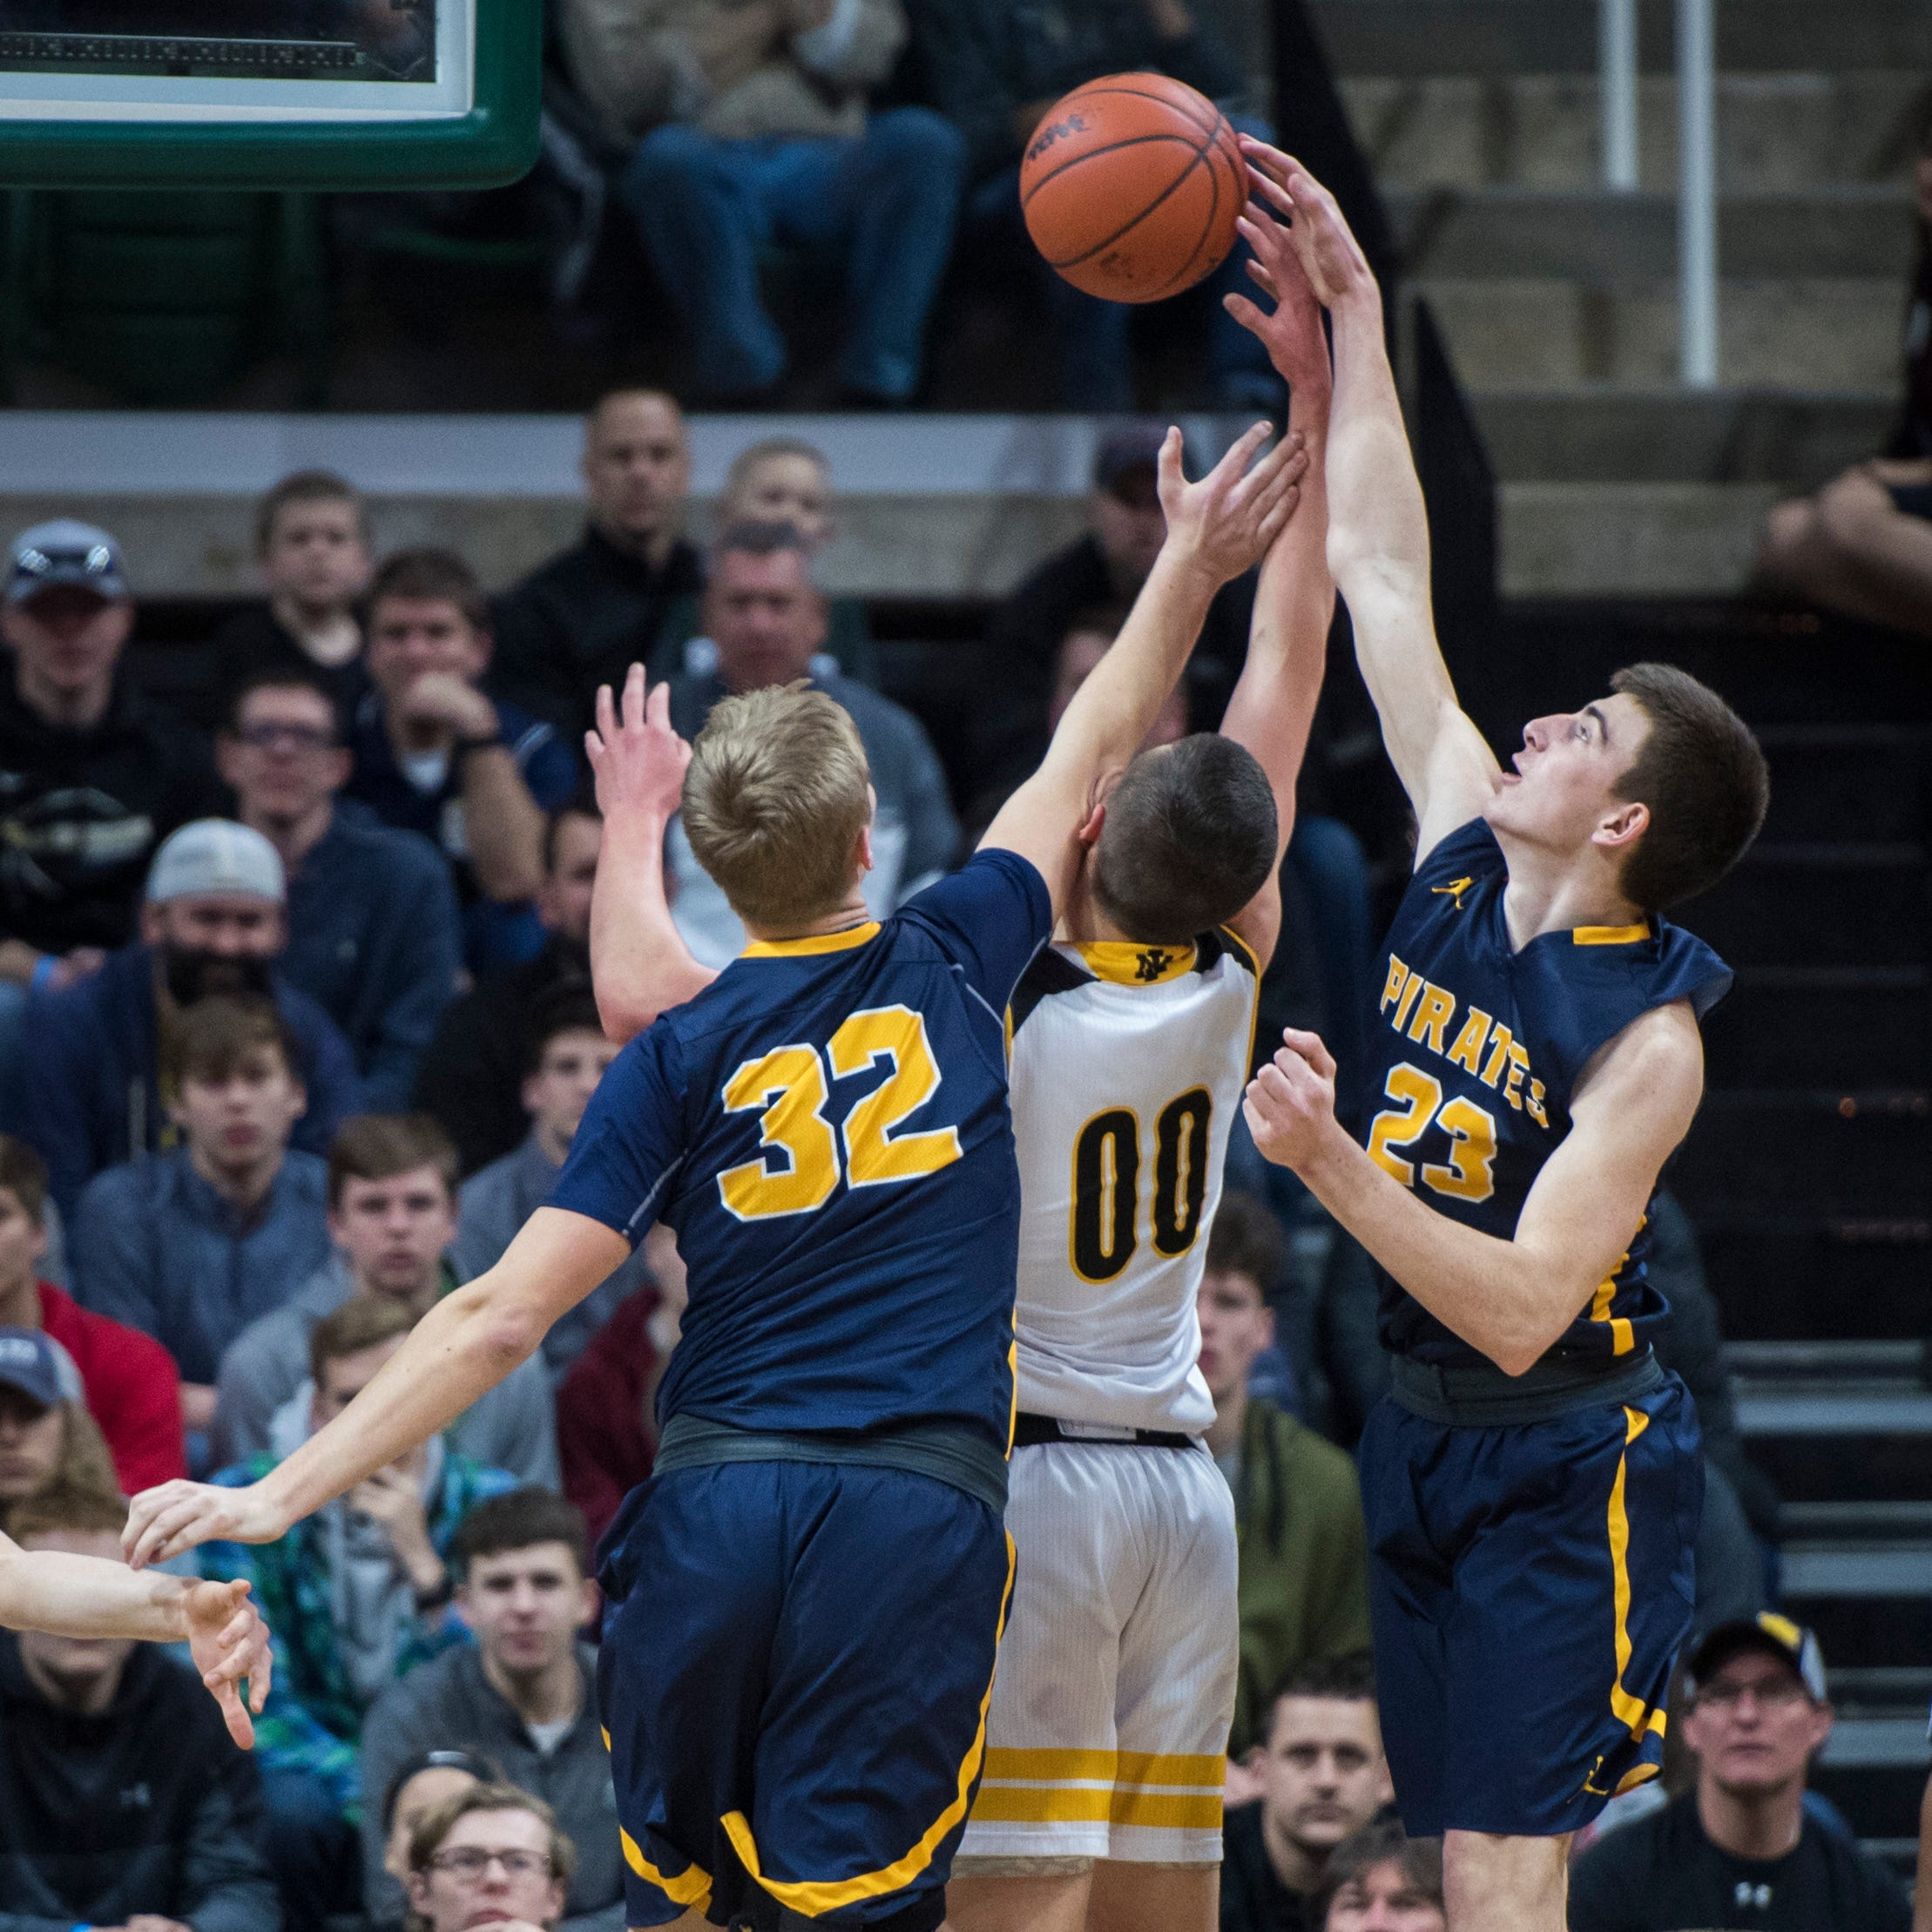 Division 3 final: Pewamo-Westphalia wins title amid controversy